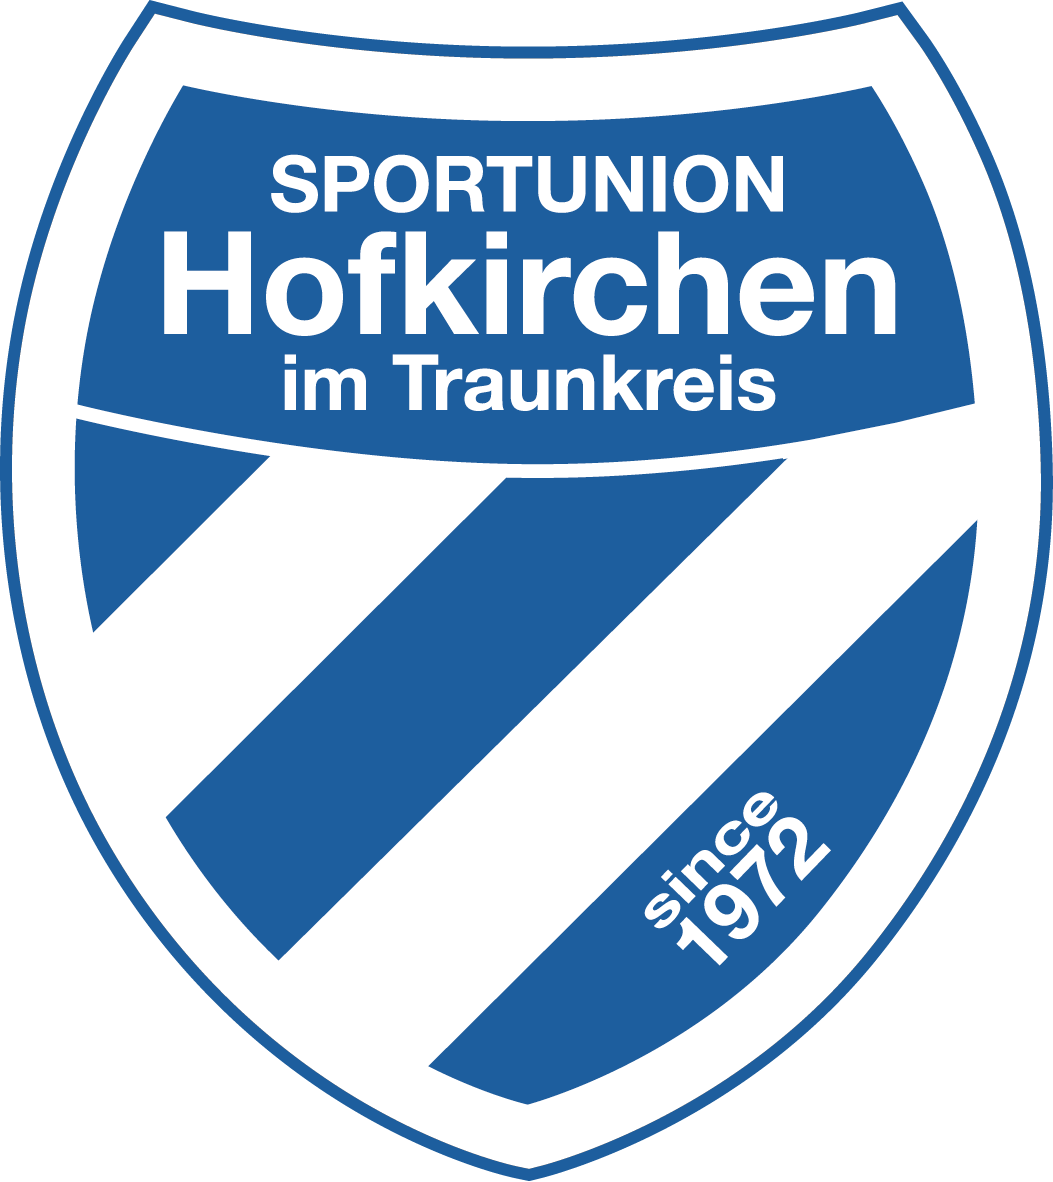 Sportunion Hofkirchen